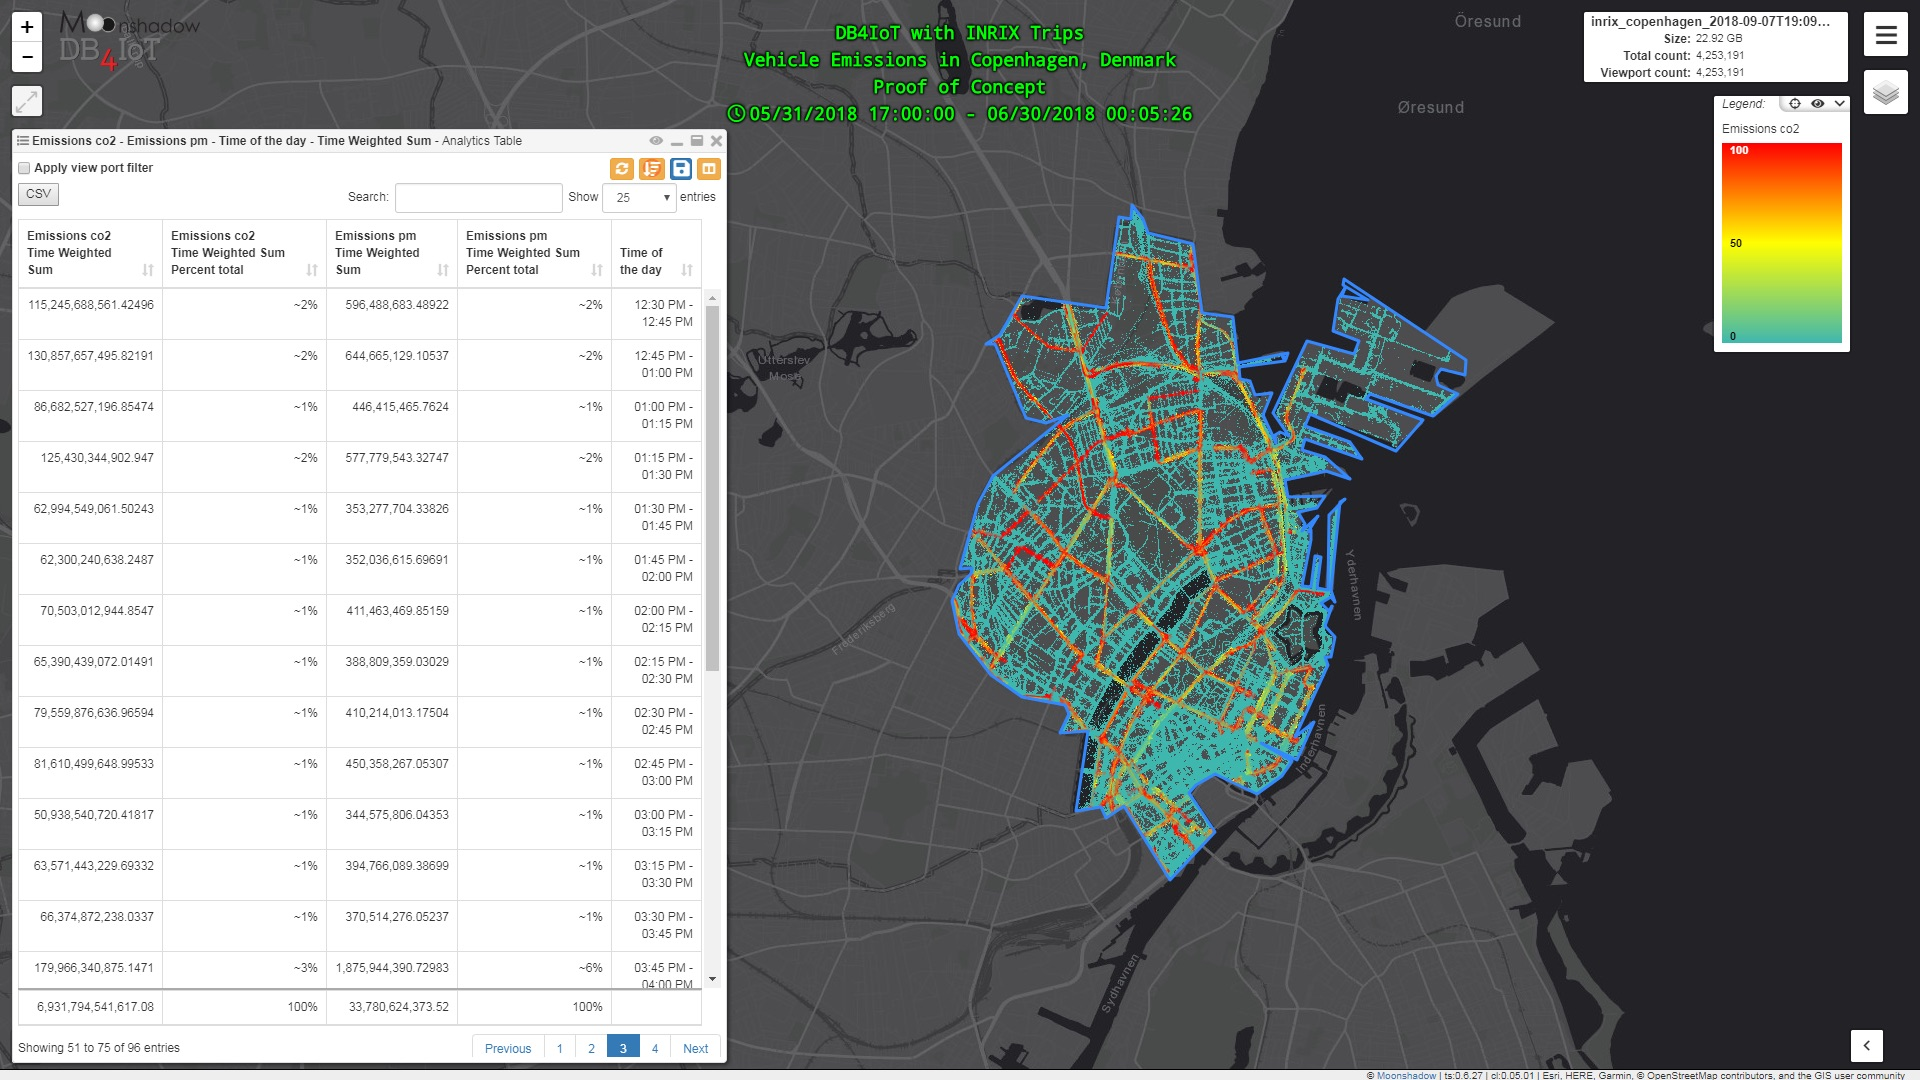 DB4IoT with INRIX Trips - CO2 and PM Emissions per Time of Day for a neighborhood in Copenhagen